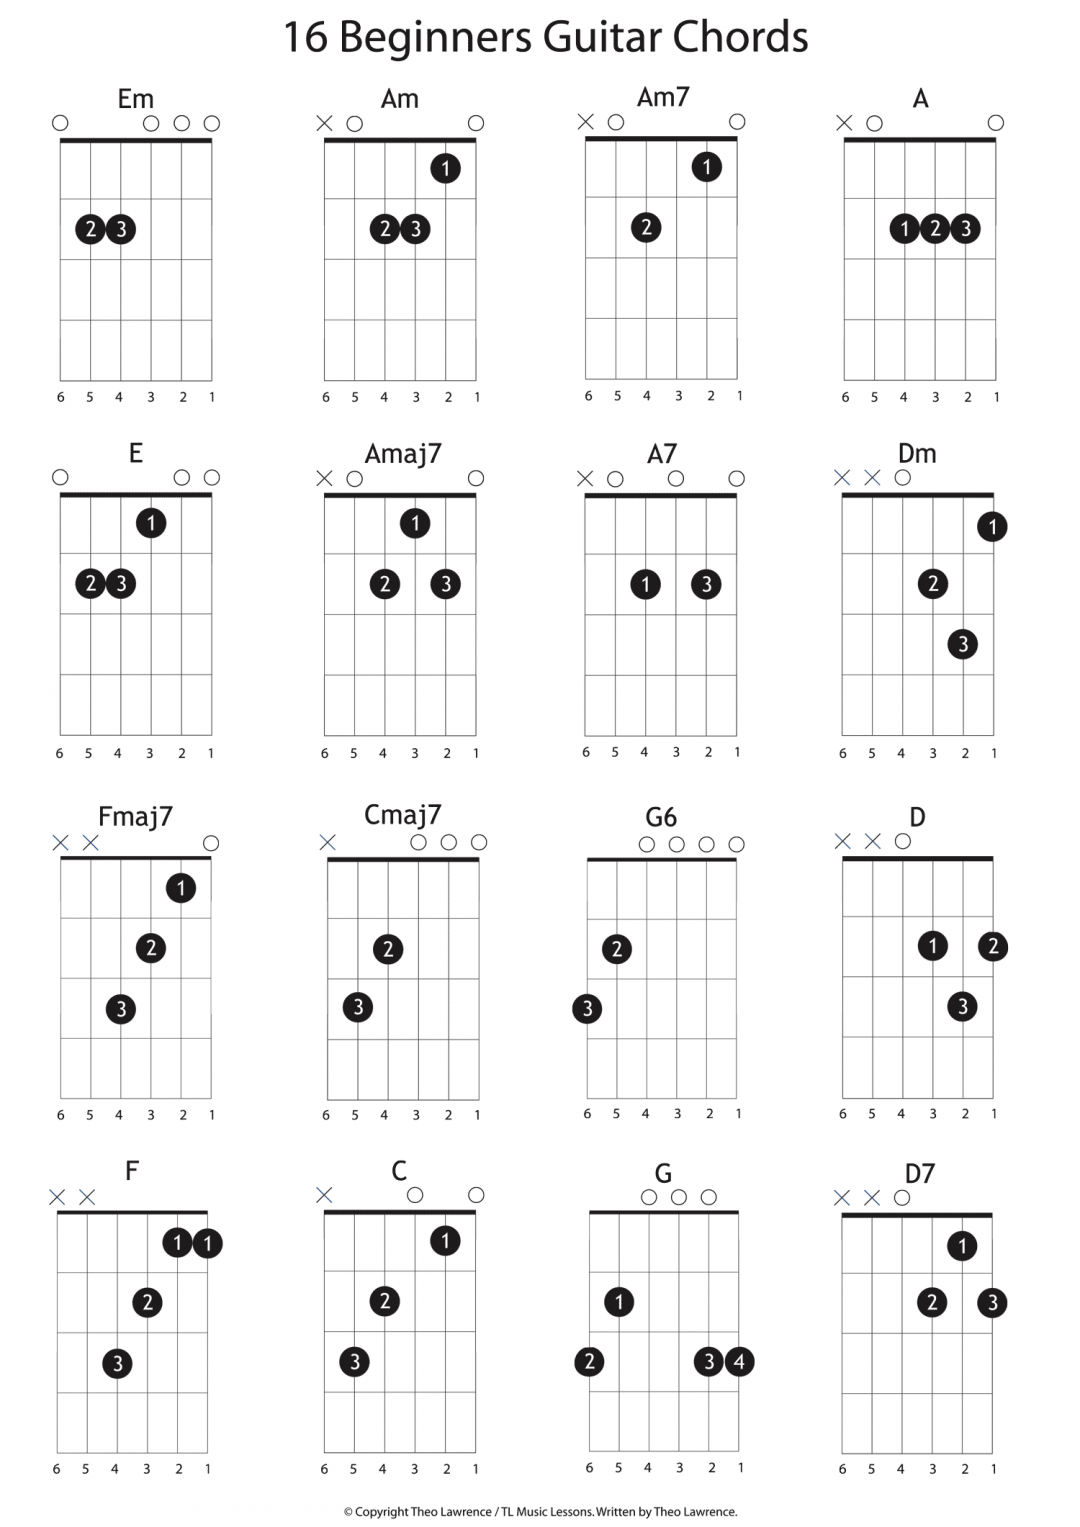 16 Beginners Guitar Chords